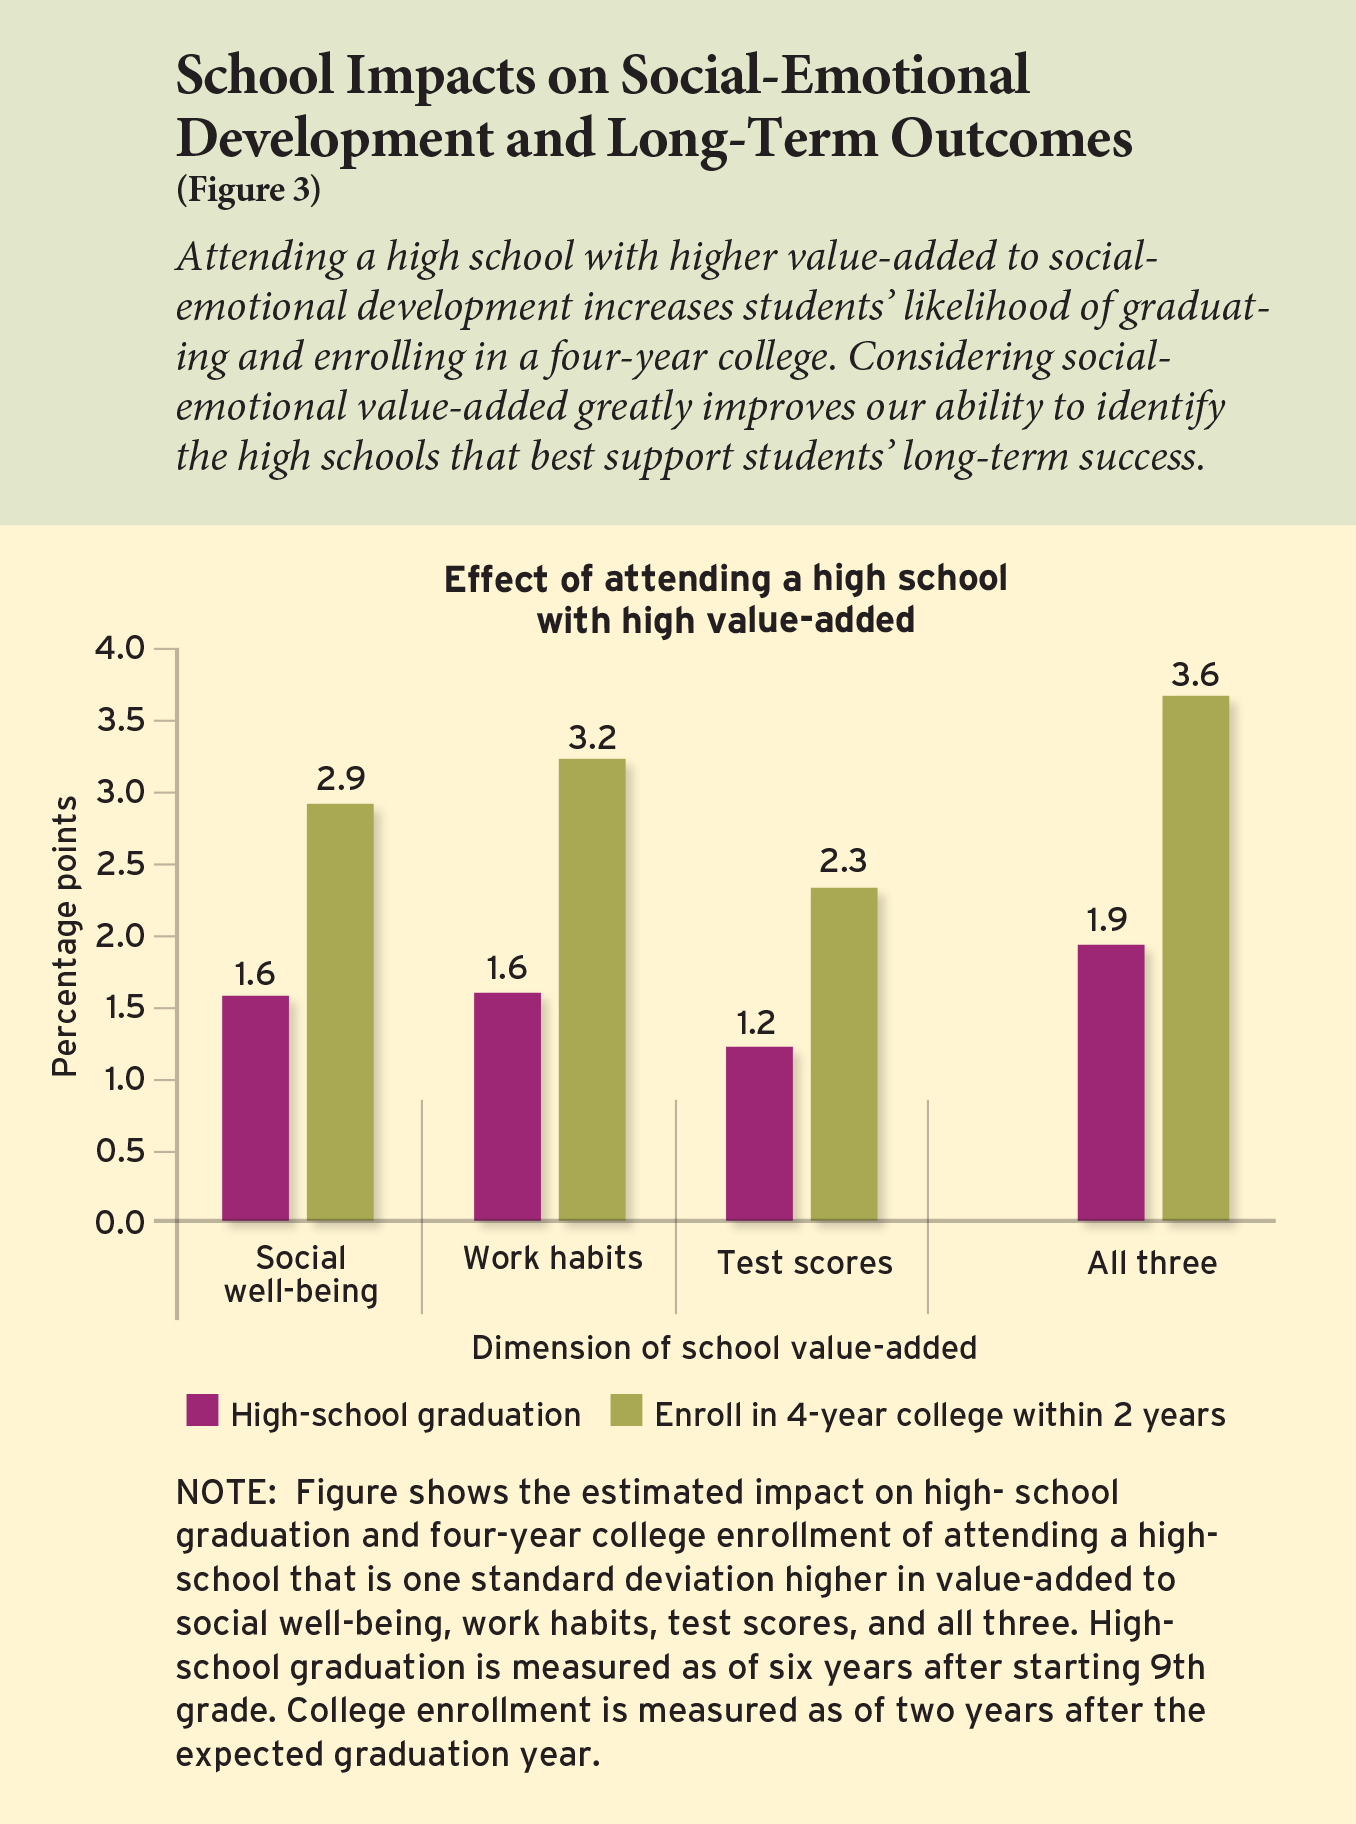 Figure 3: School Impacts on Social-Emotional Development and Long-Term Outcomes